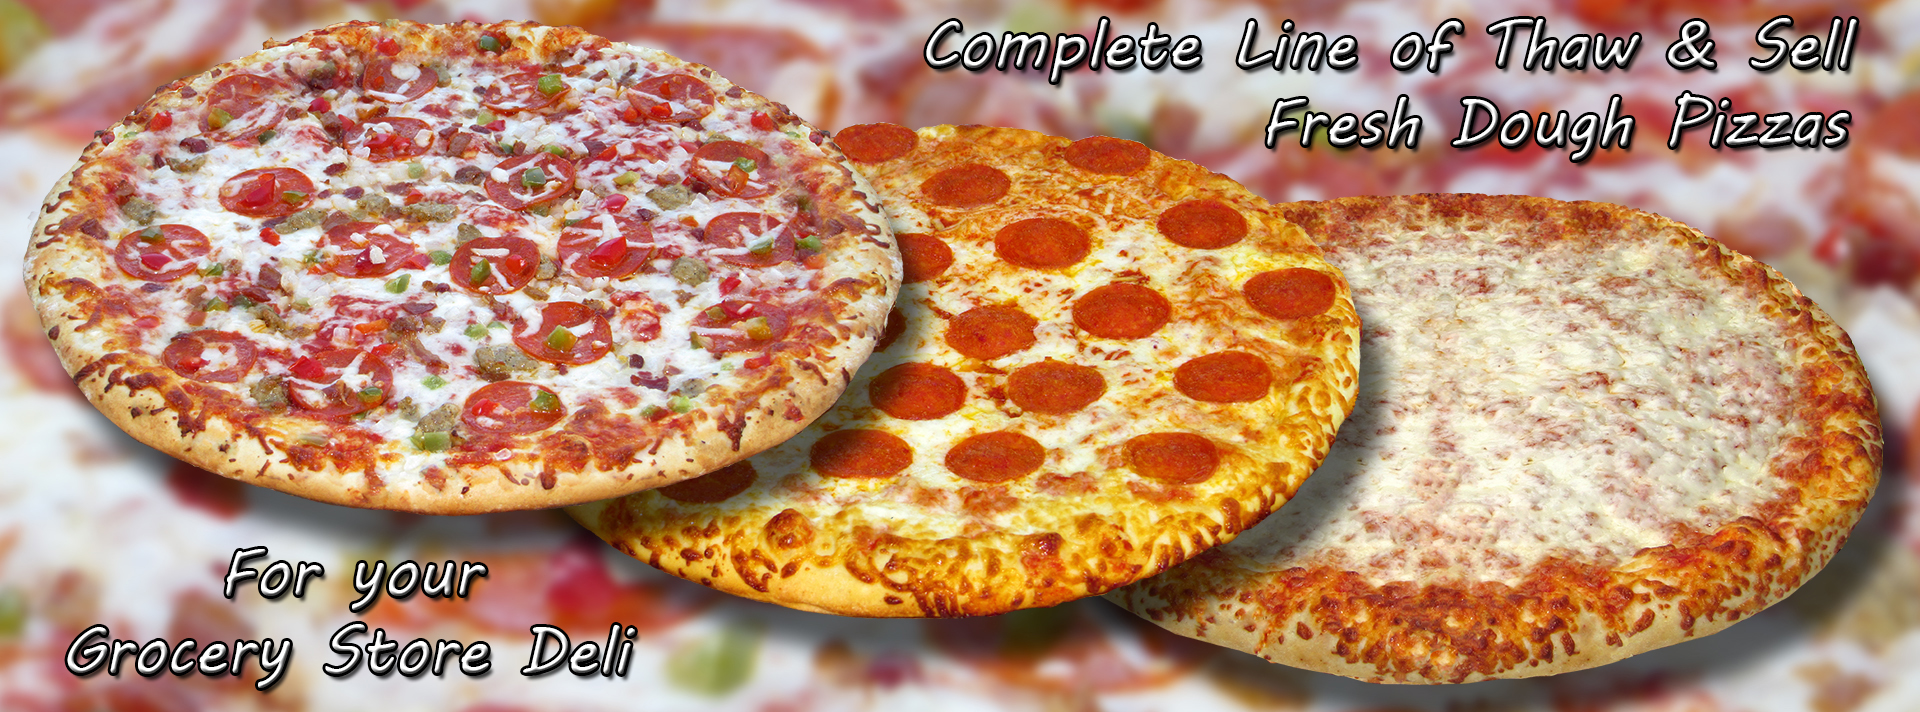 Complete line of thaw and sell fresh dough pizza for your grocery store deli.